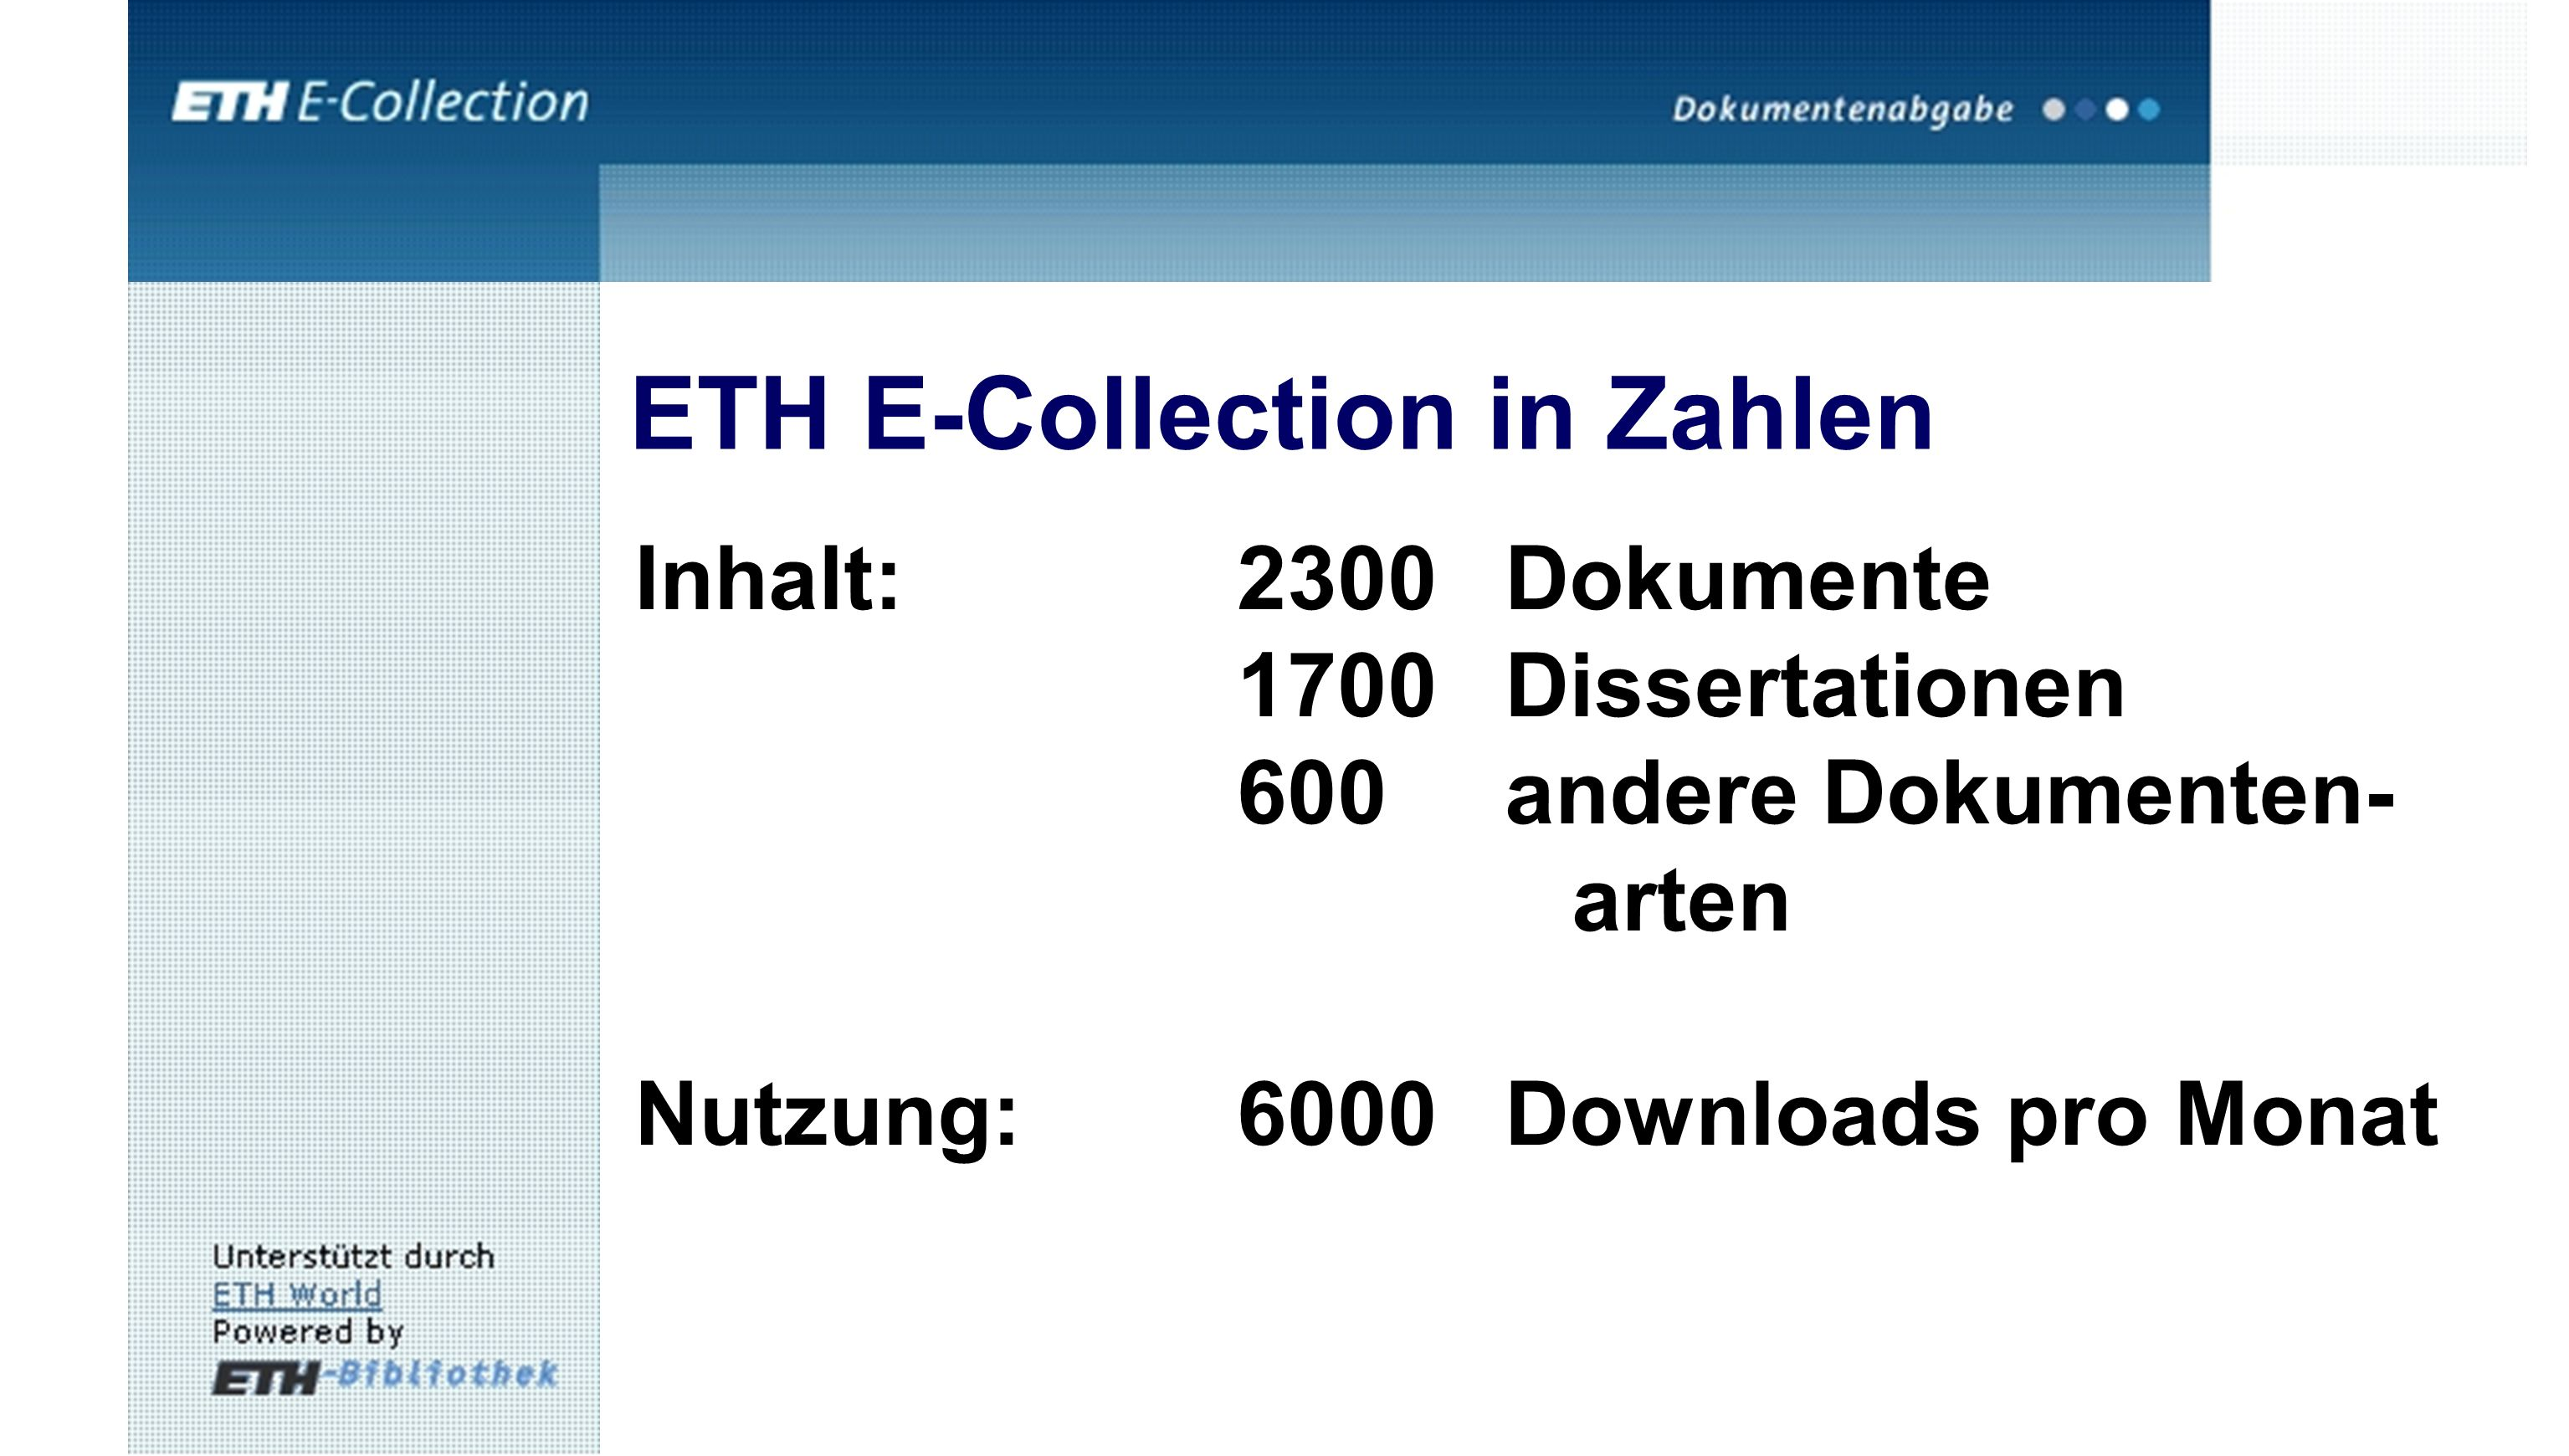 ETH E-Collection in Zahlen Inhalt:2300 Dokumente 1700Dissertationen 600andere Dokumenten- arten Nutzung:6000 Downloads pro Monat